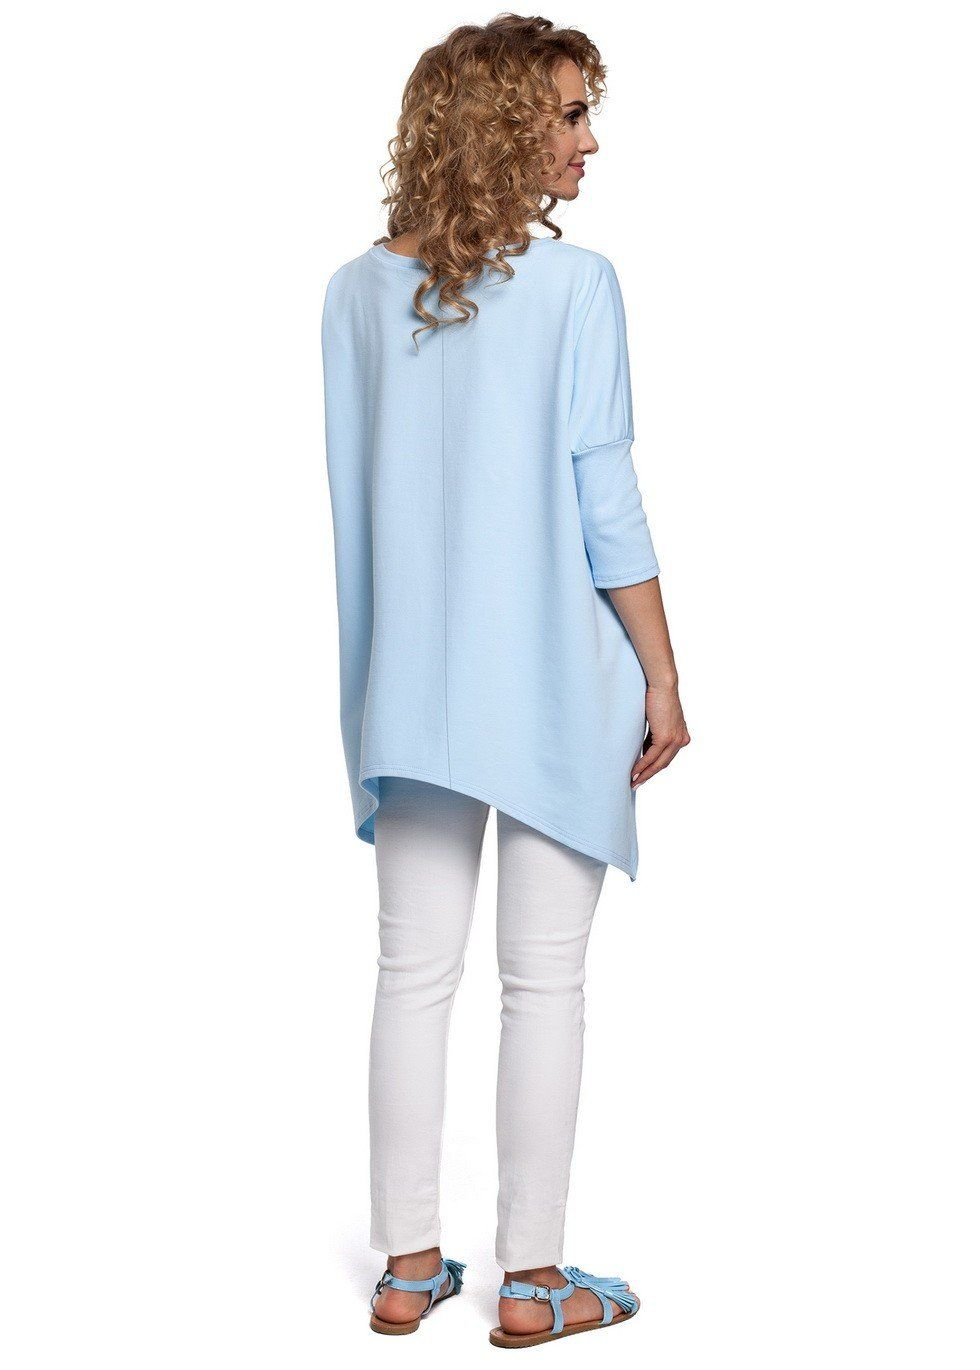 It is surely a must-have! A versatile, oversized poncho - cape with an asymmetric bottom hem and 3/4 sleeves. It is ideal to wrap up whenever you need to feel comfortable and cozy in any season. S / M L / XL 2XL / 3XL The width at the bust: 65cm 68cm 72cm Total length: 90cm 91cm 92cm